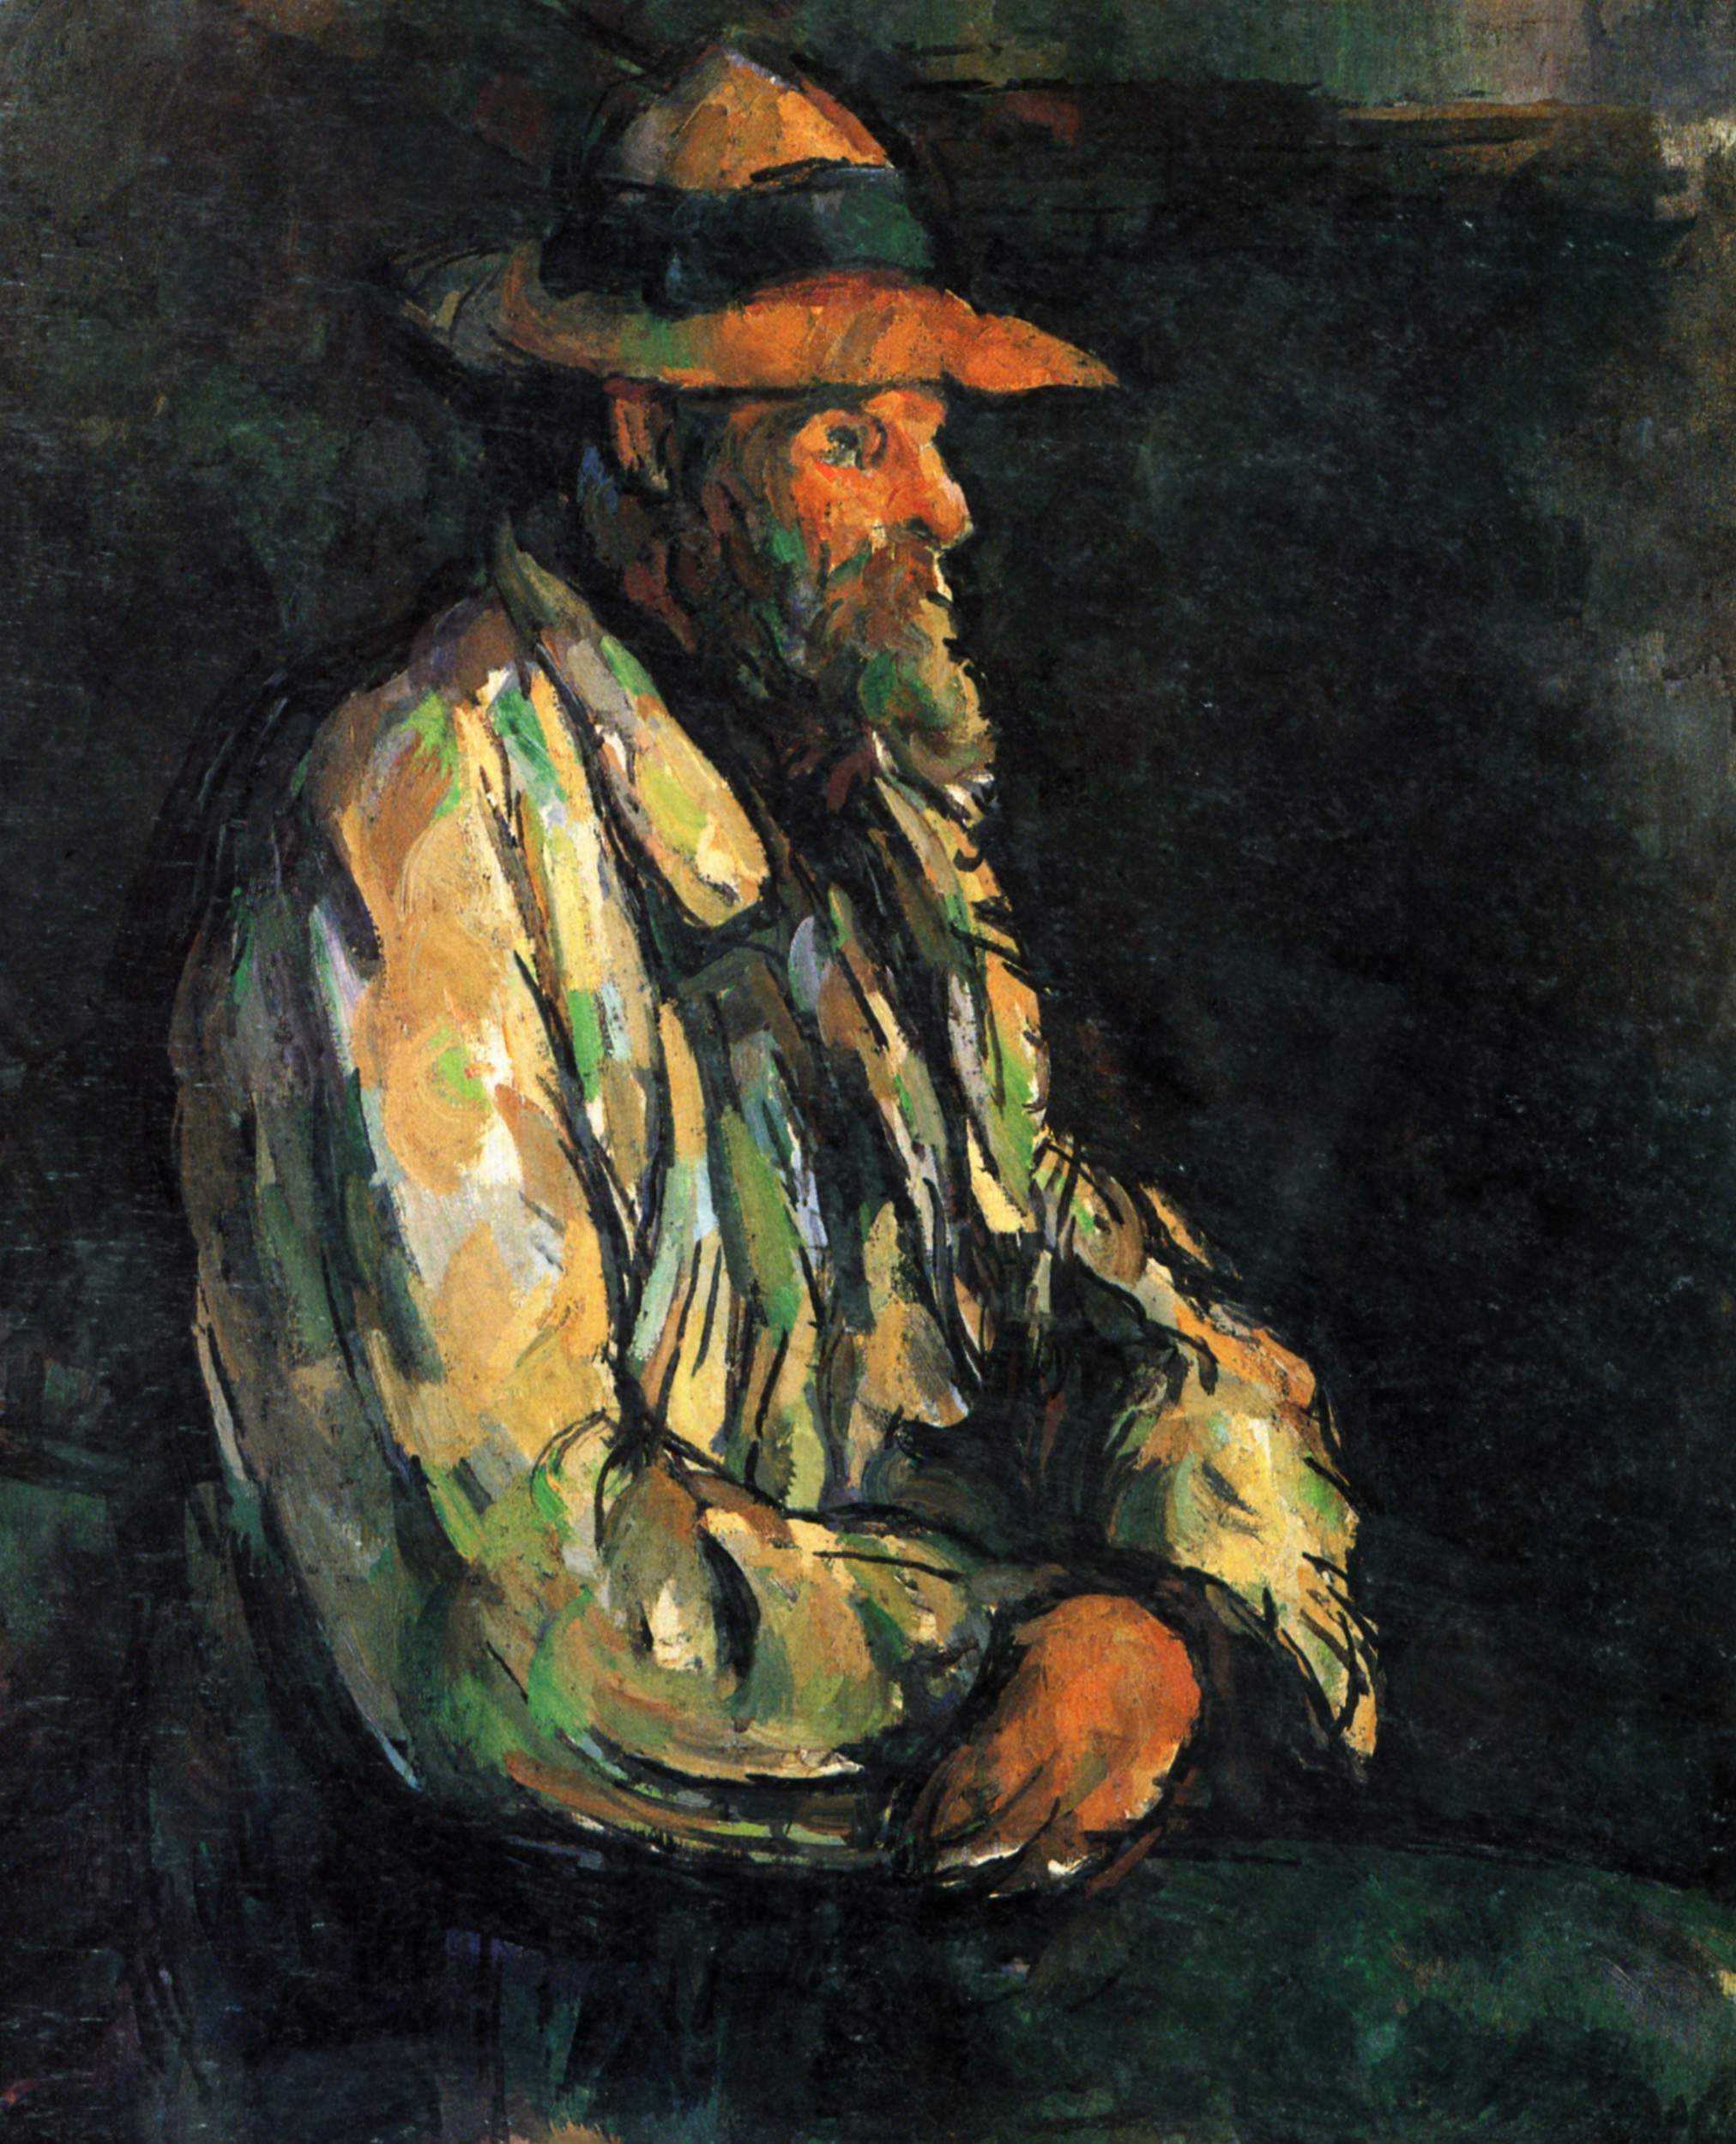 https://uploads7.wikiart.org/images/paul-cezanne/portrait-of-vallier-1906.jpg